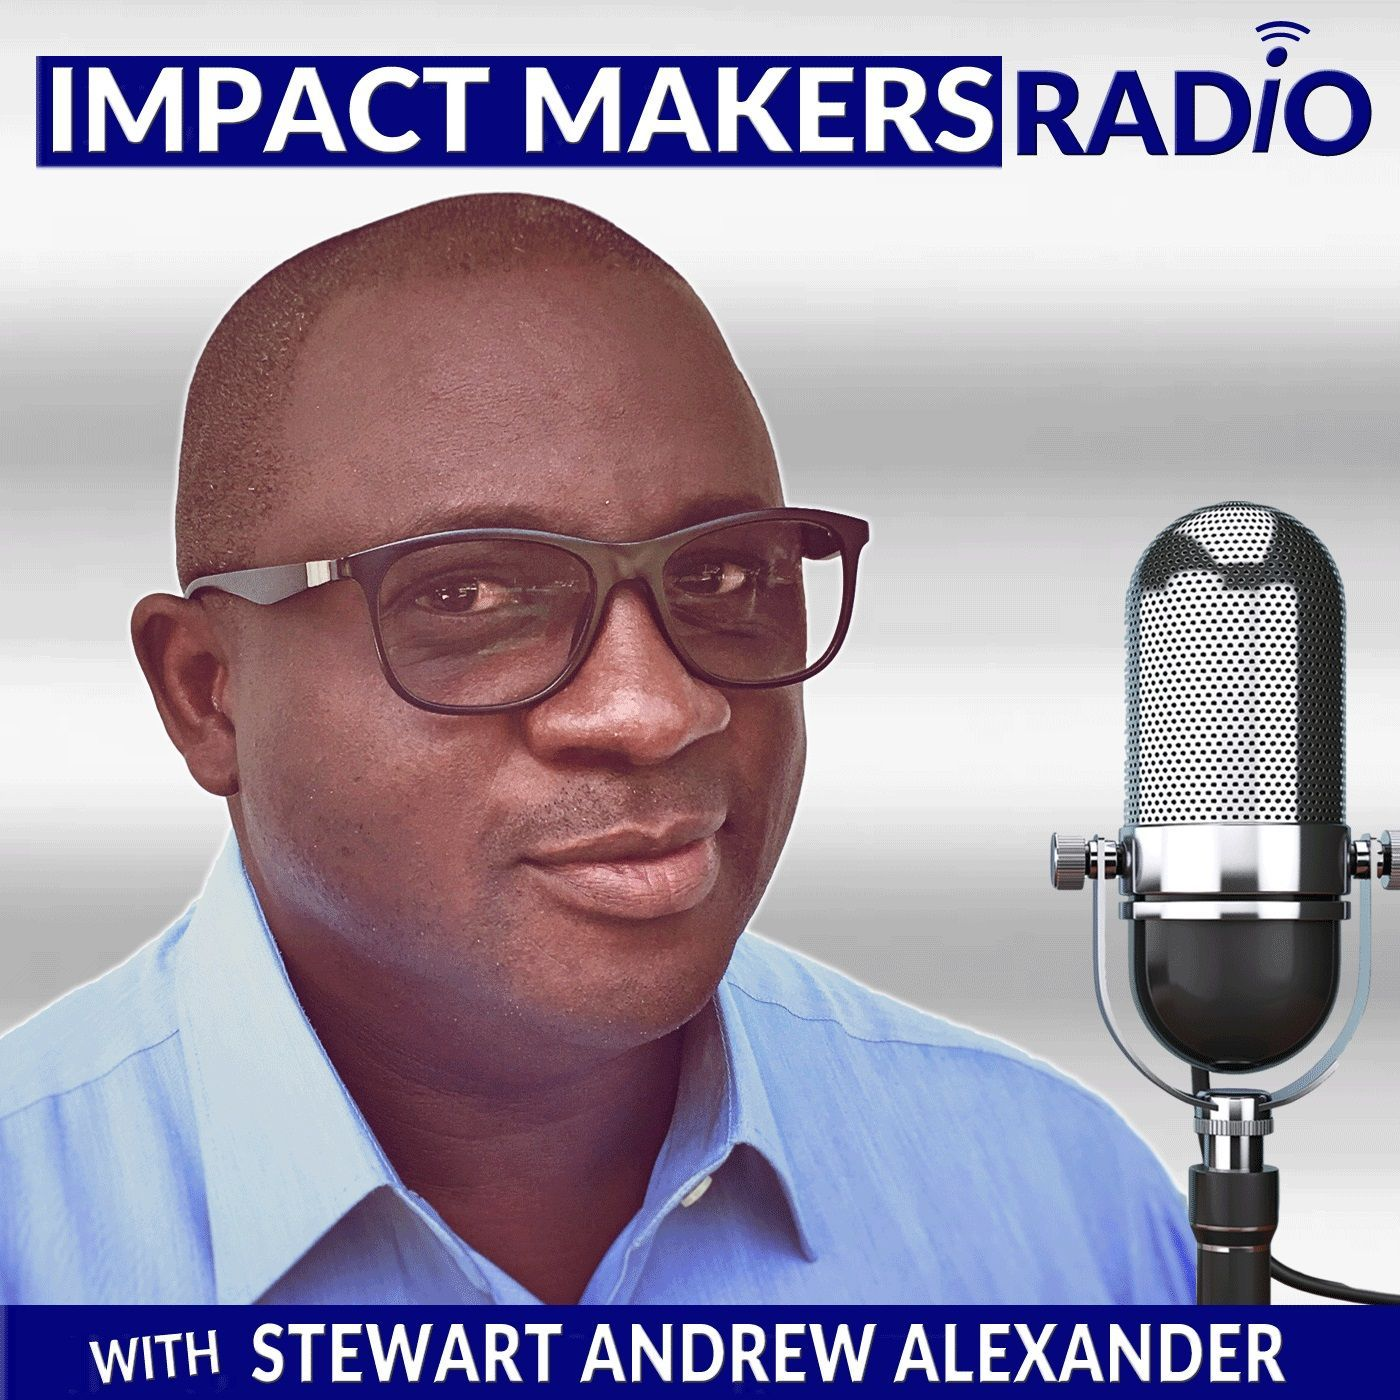 Stewart Andrew Alexander on 18 Years of Verbal Abuse, 12 Years Military Service and How It Affects What He Does Today